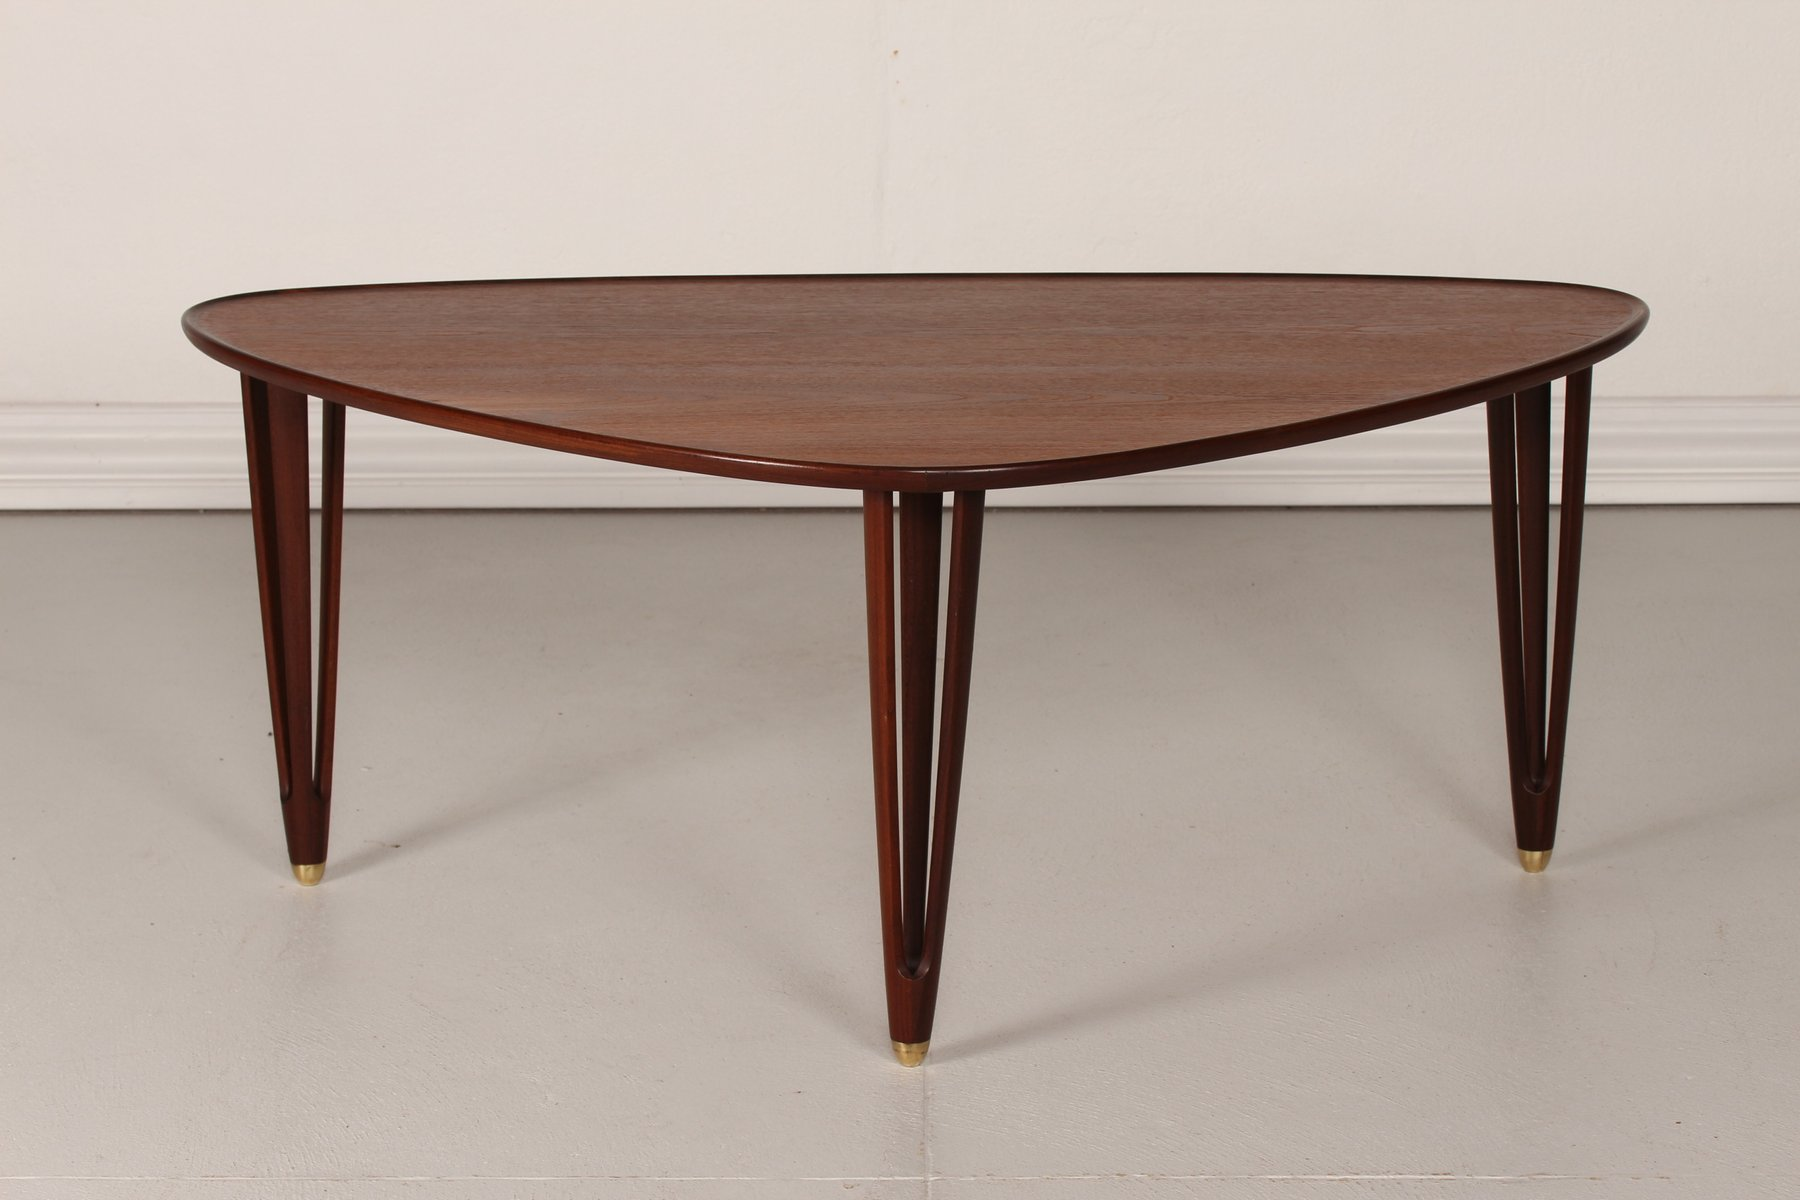 Vintage Danish Triangular Coffee Table In Teak 1950s For Sale At Pamono